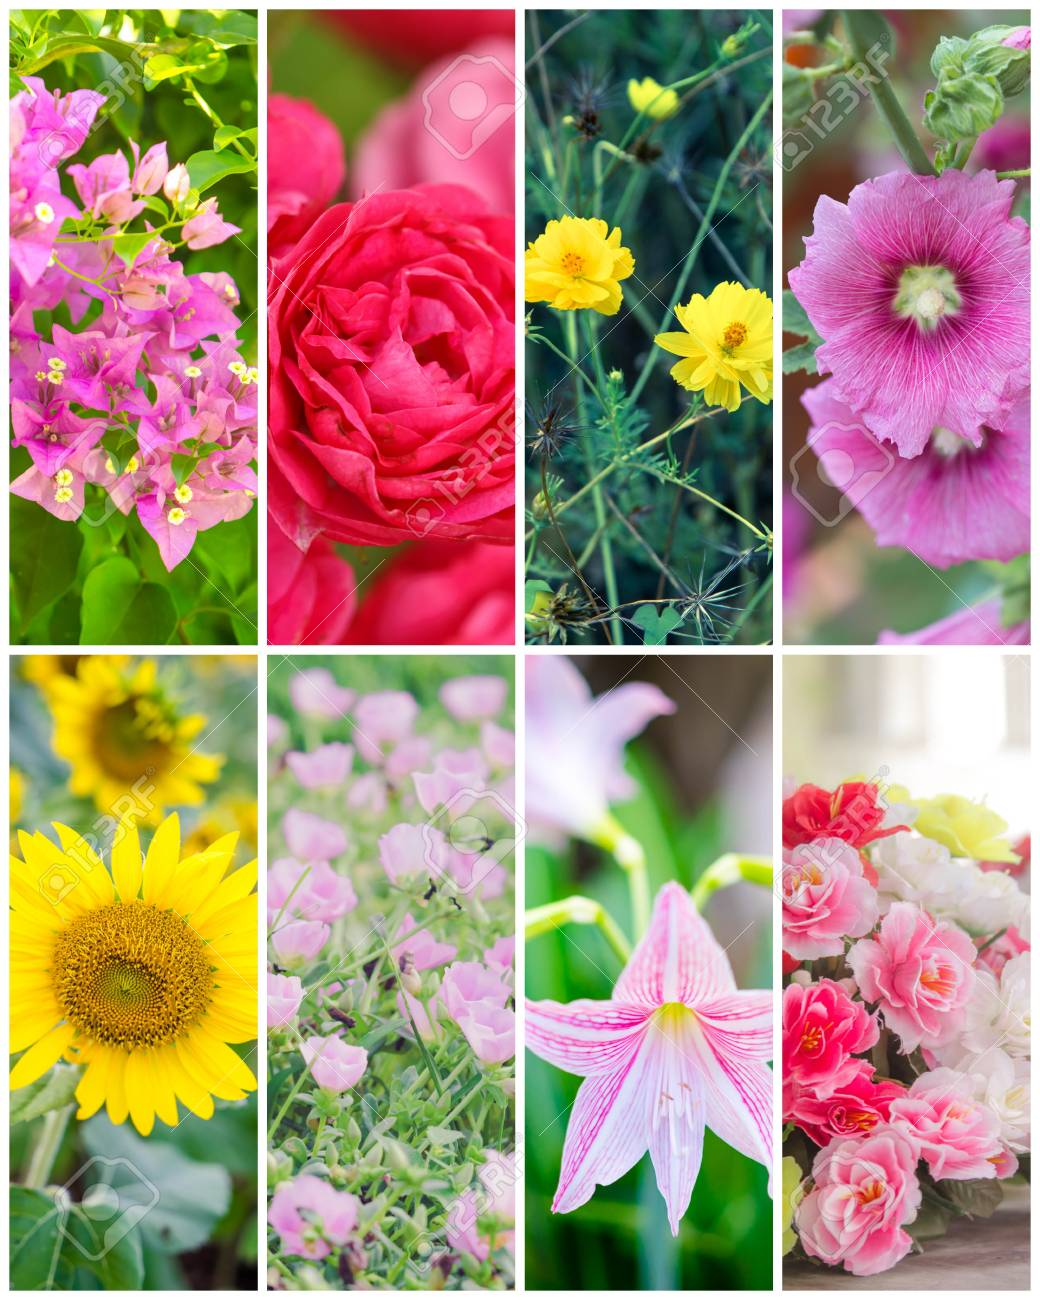 Collage picture of different beautiful flowers stock photo picture collage picture of different beautiful flowers stock photo 70052830 izmirmasajfo